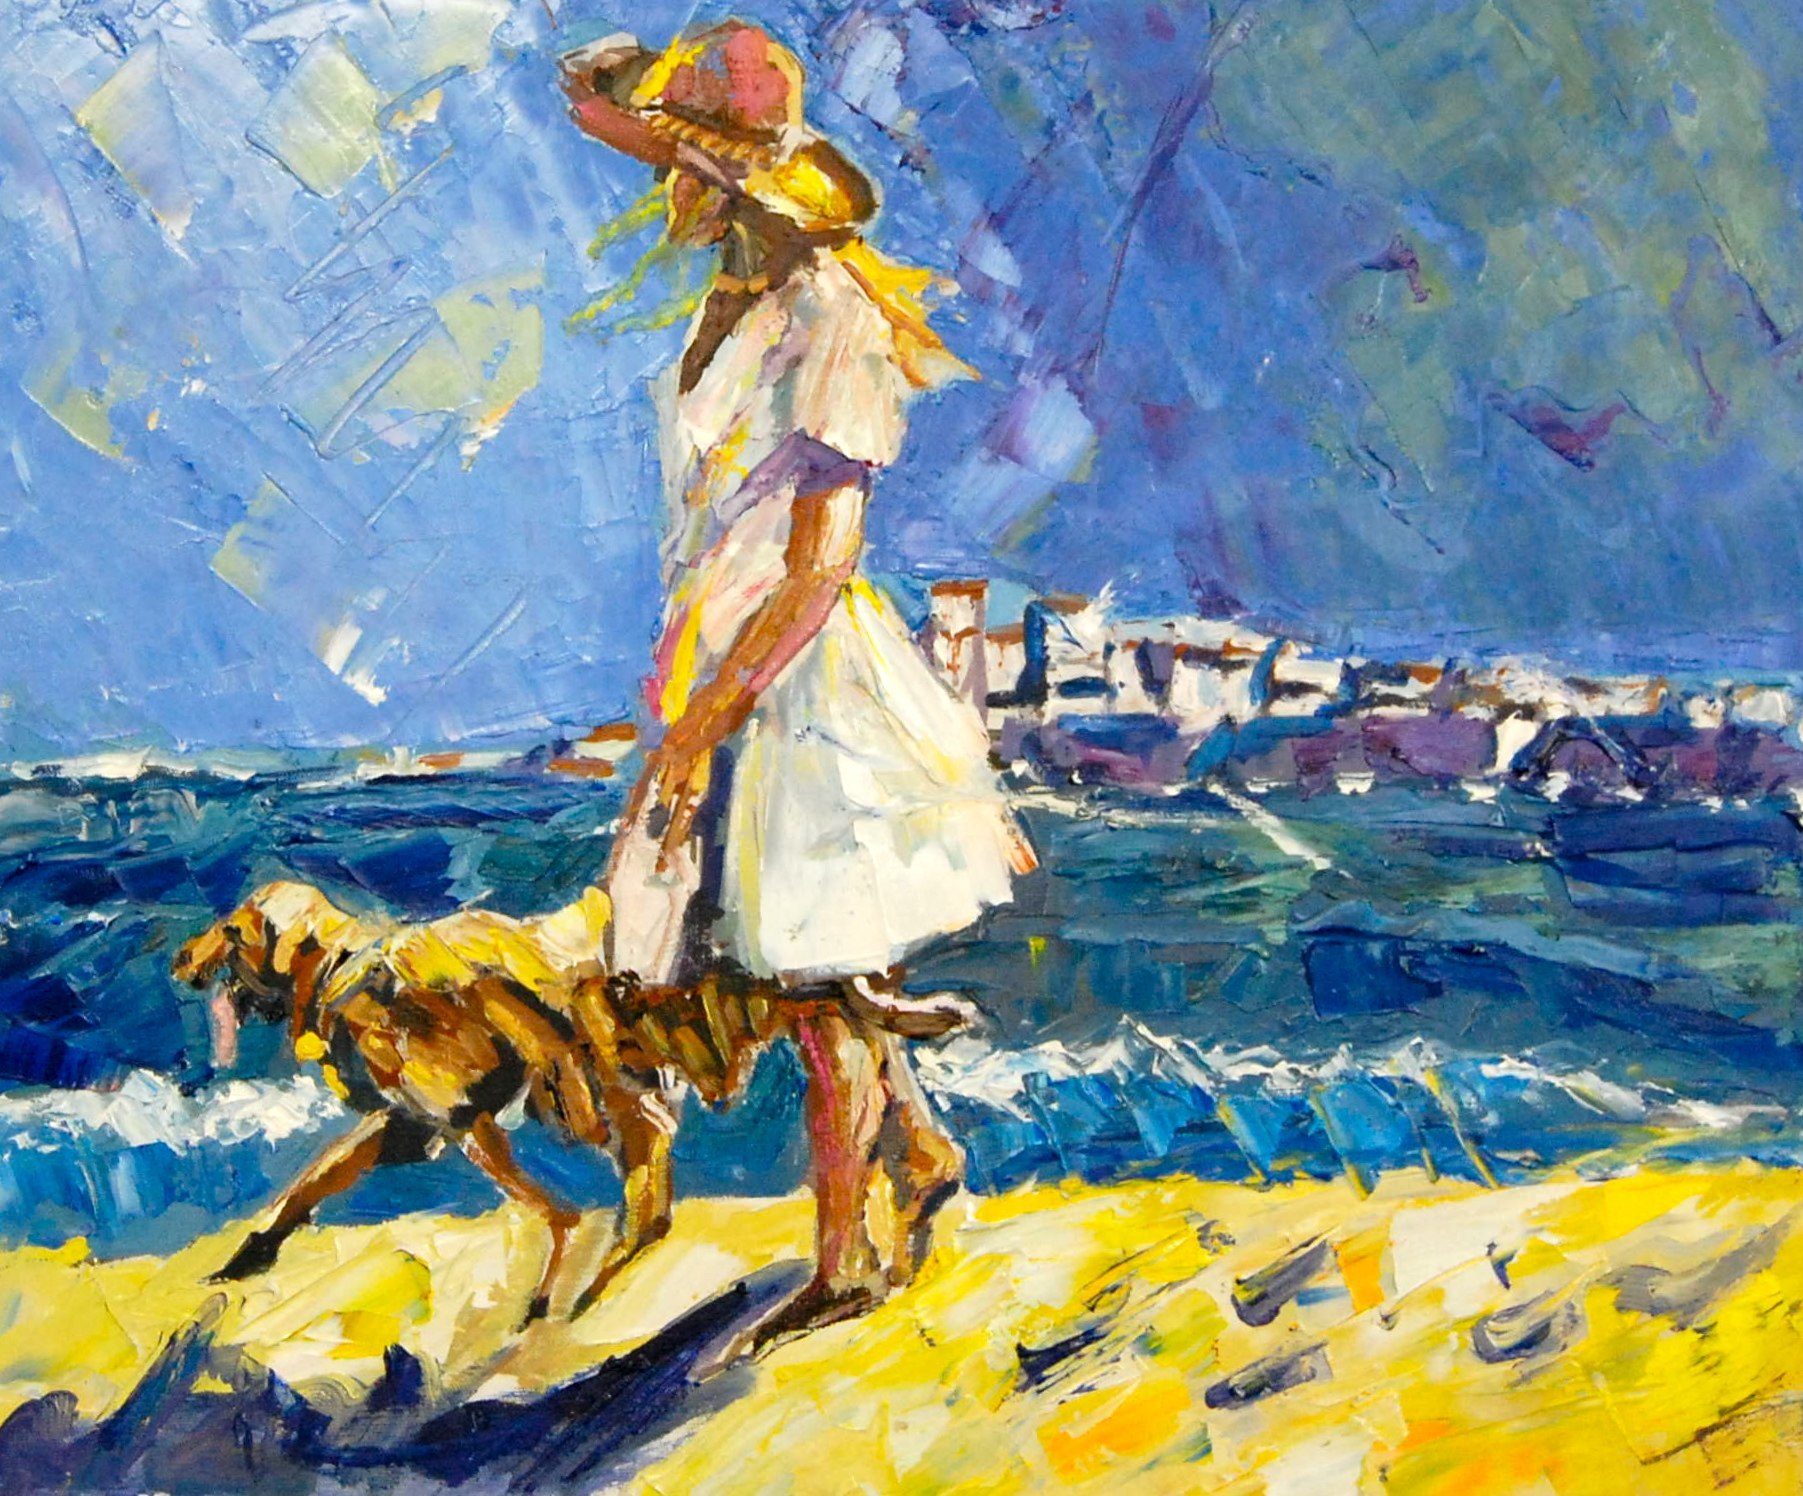 dog_and_woman_by_the_beach_b6mcn8e2